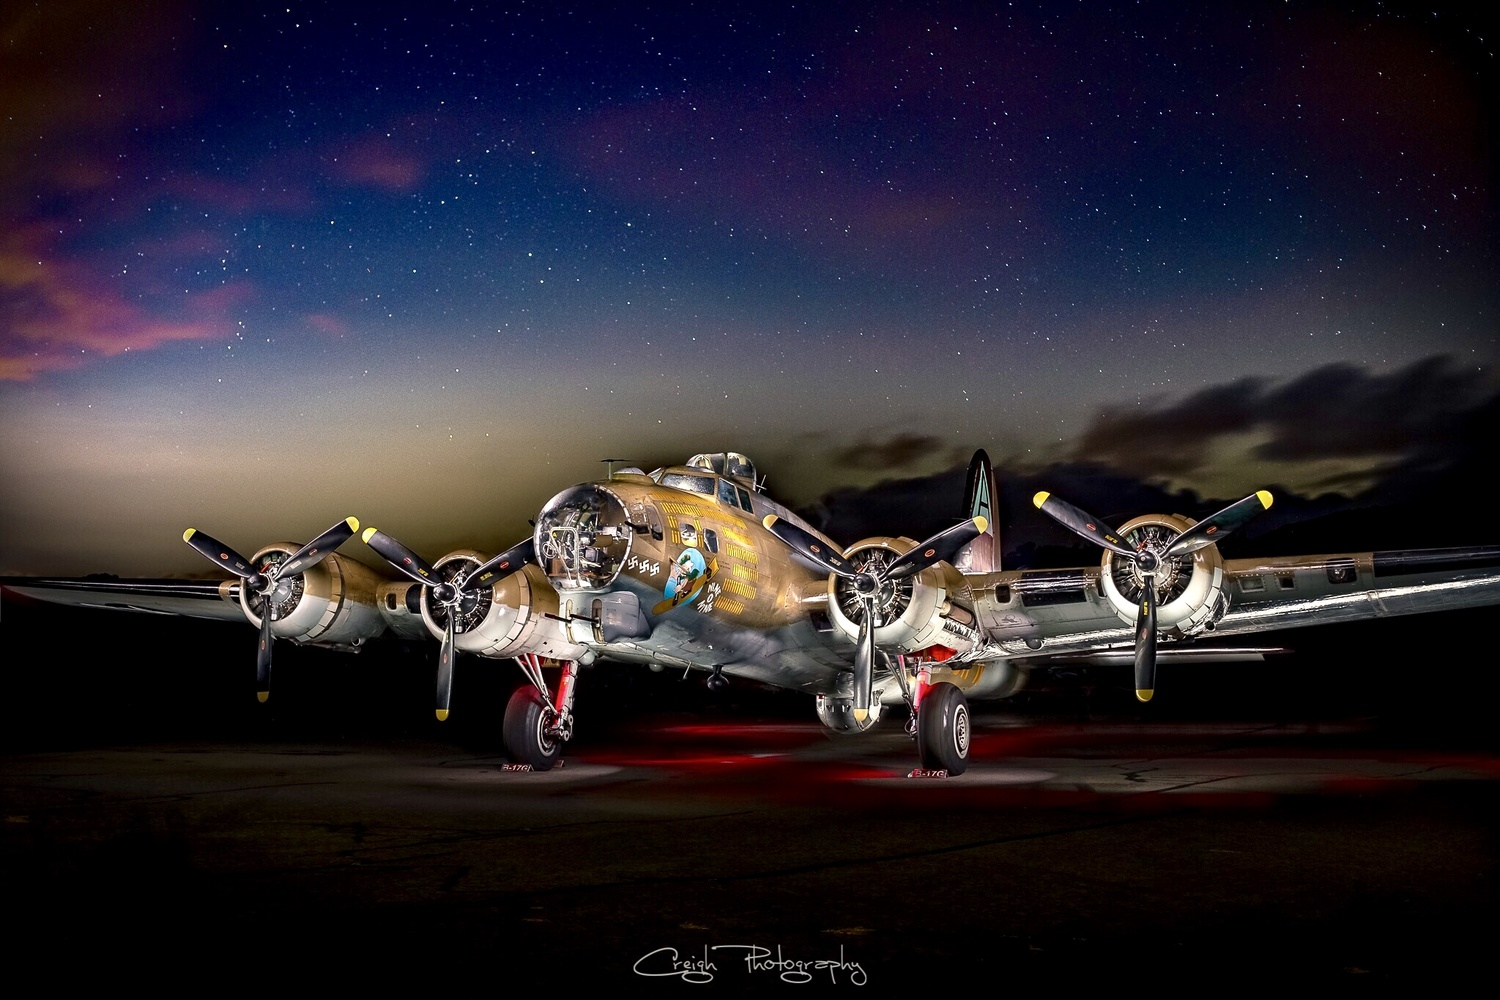 Flying Fortress by Creigh McIntyre